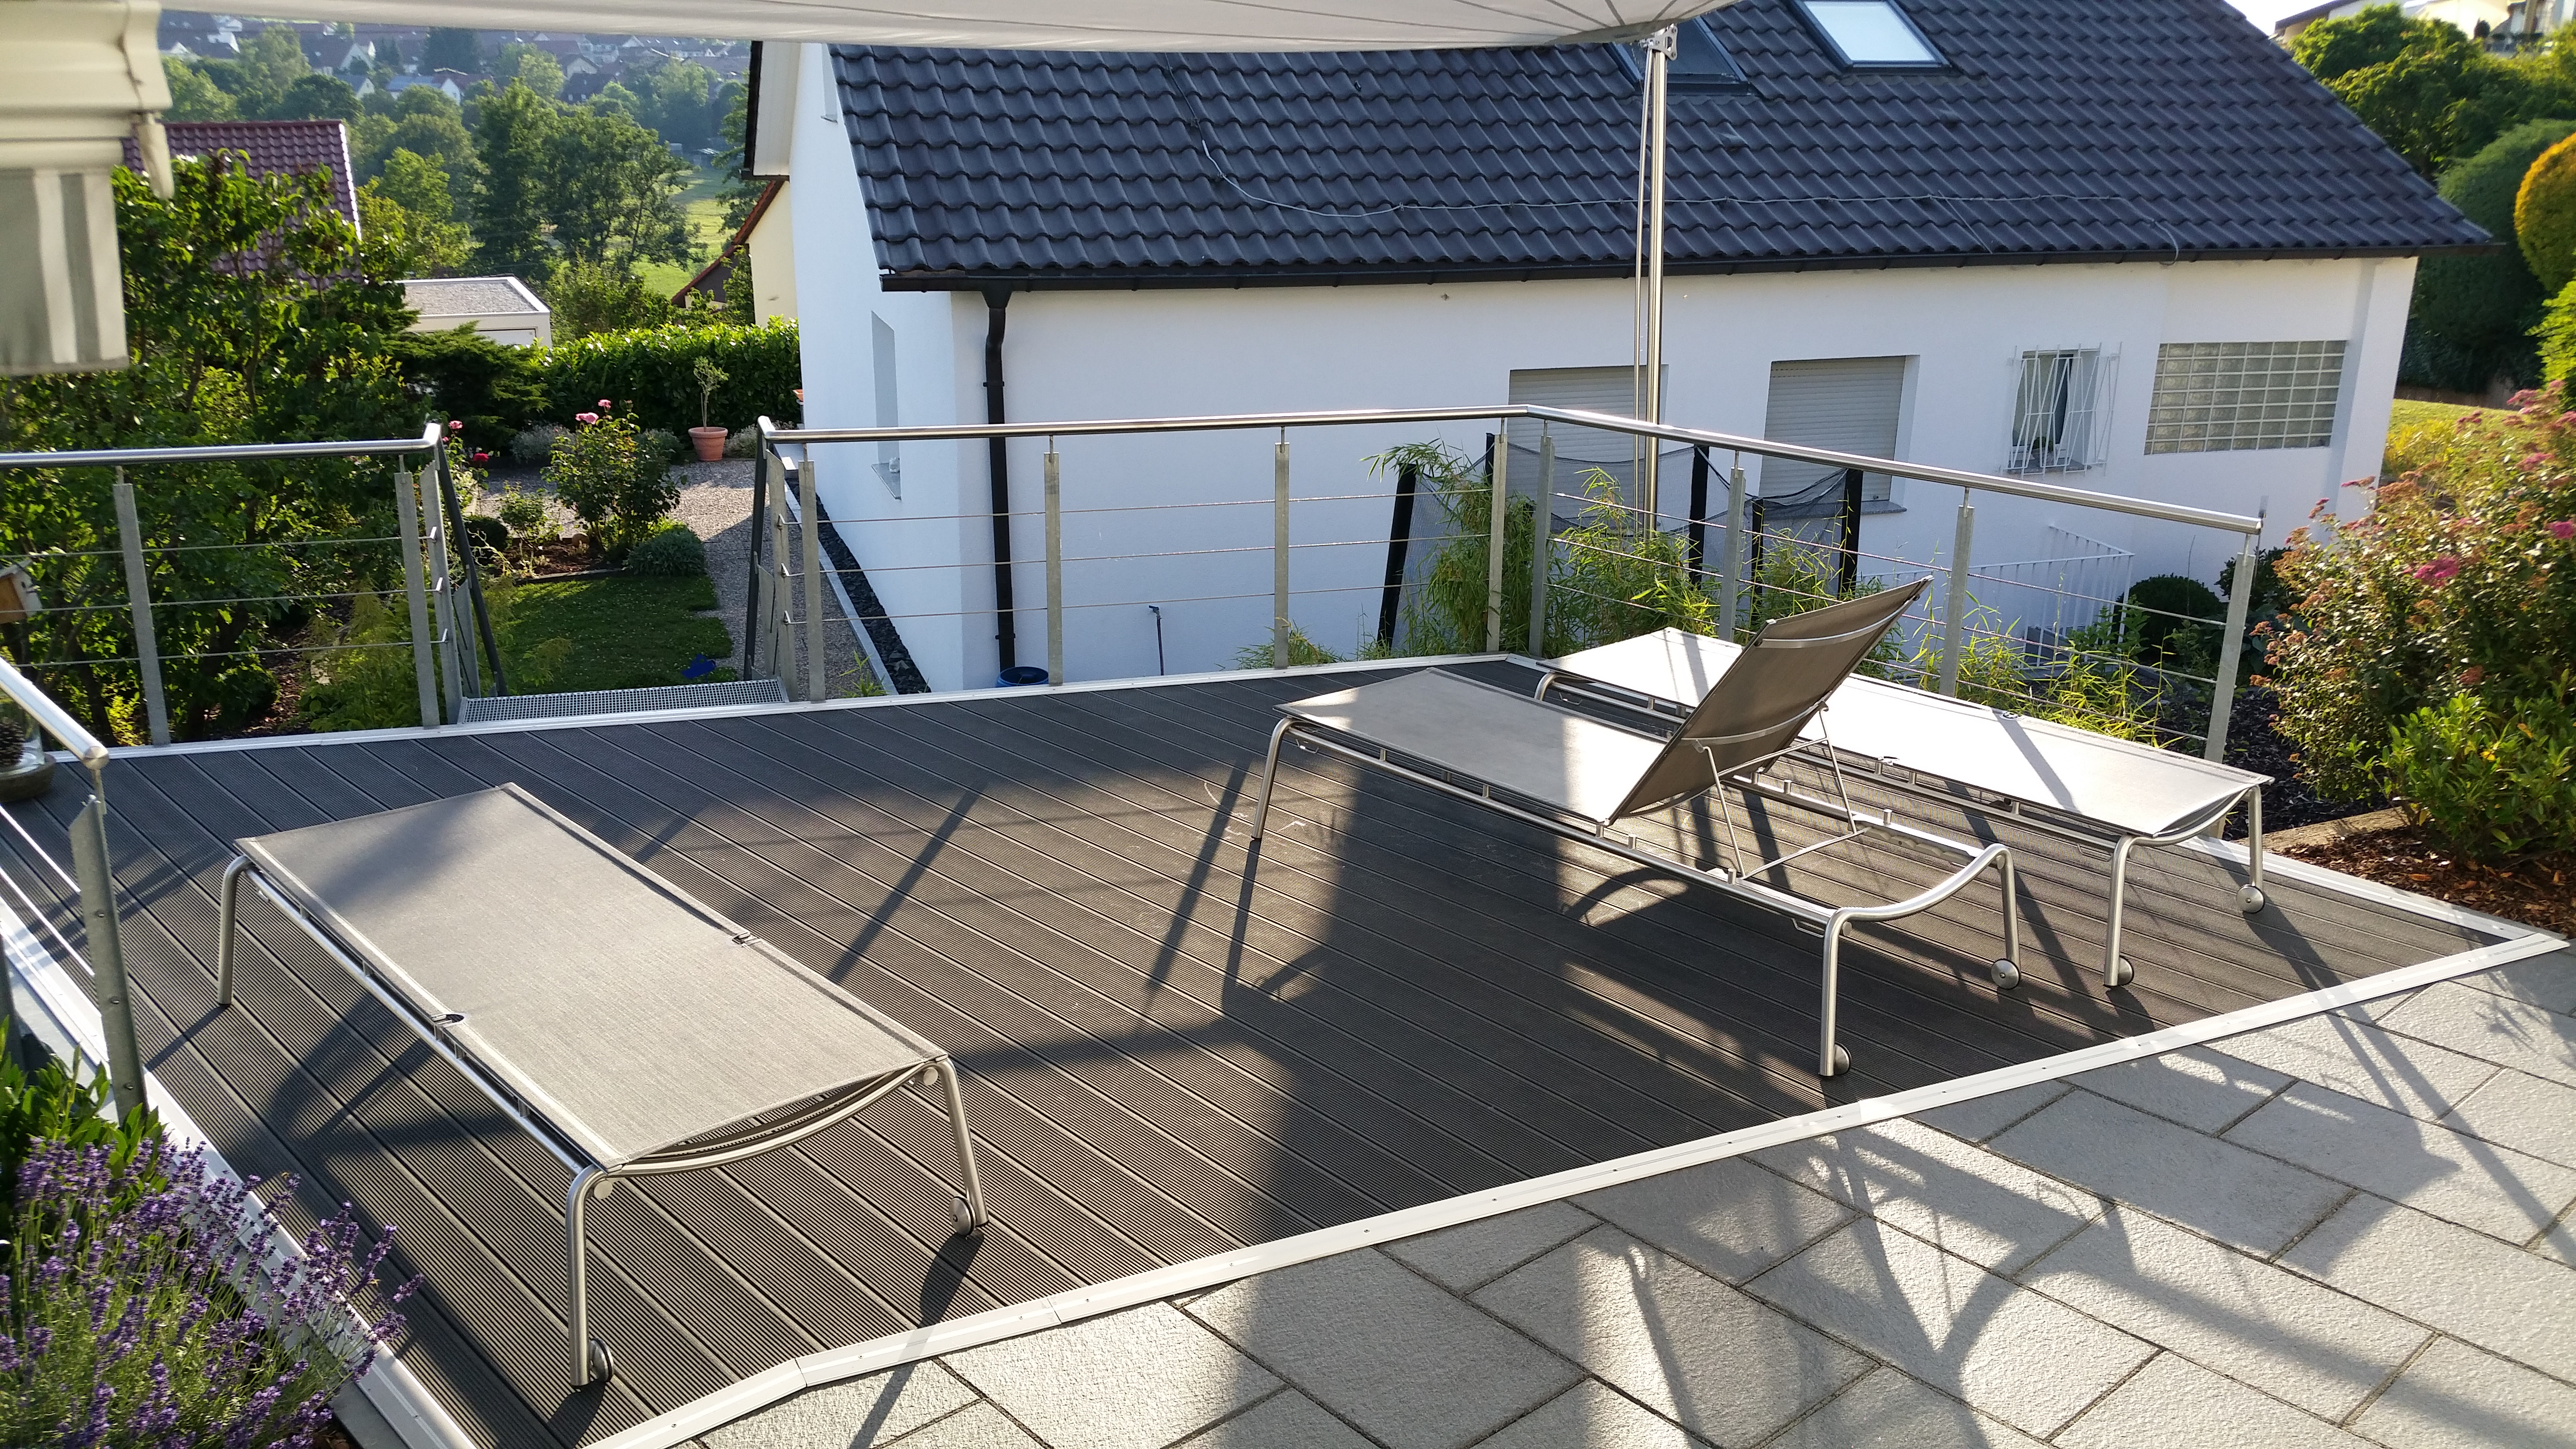 terrassenerweiterung birkmannsweiler stahlbau n gele. Black Bedroom Furniture Sets. Home Design Ideas